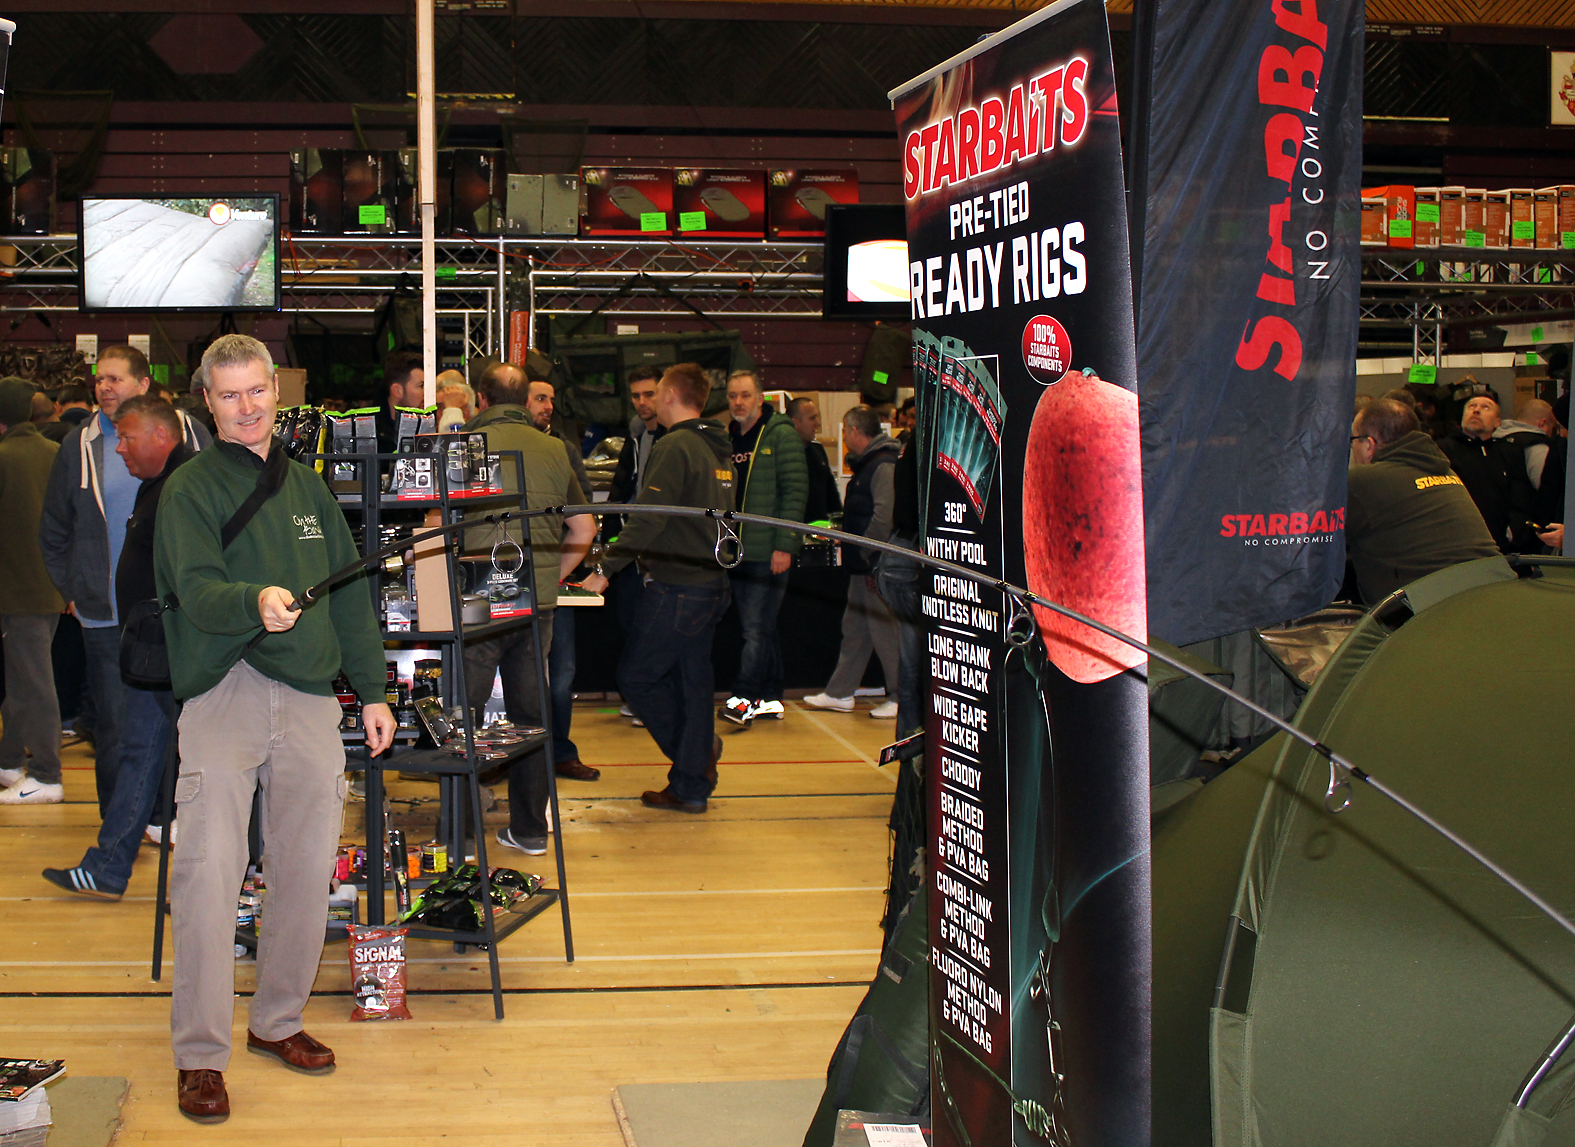 Nothing like getting a bend in your rod, I'm trying out one of the Starbaits M5 rod range at the show... please don't let go...